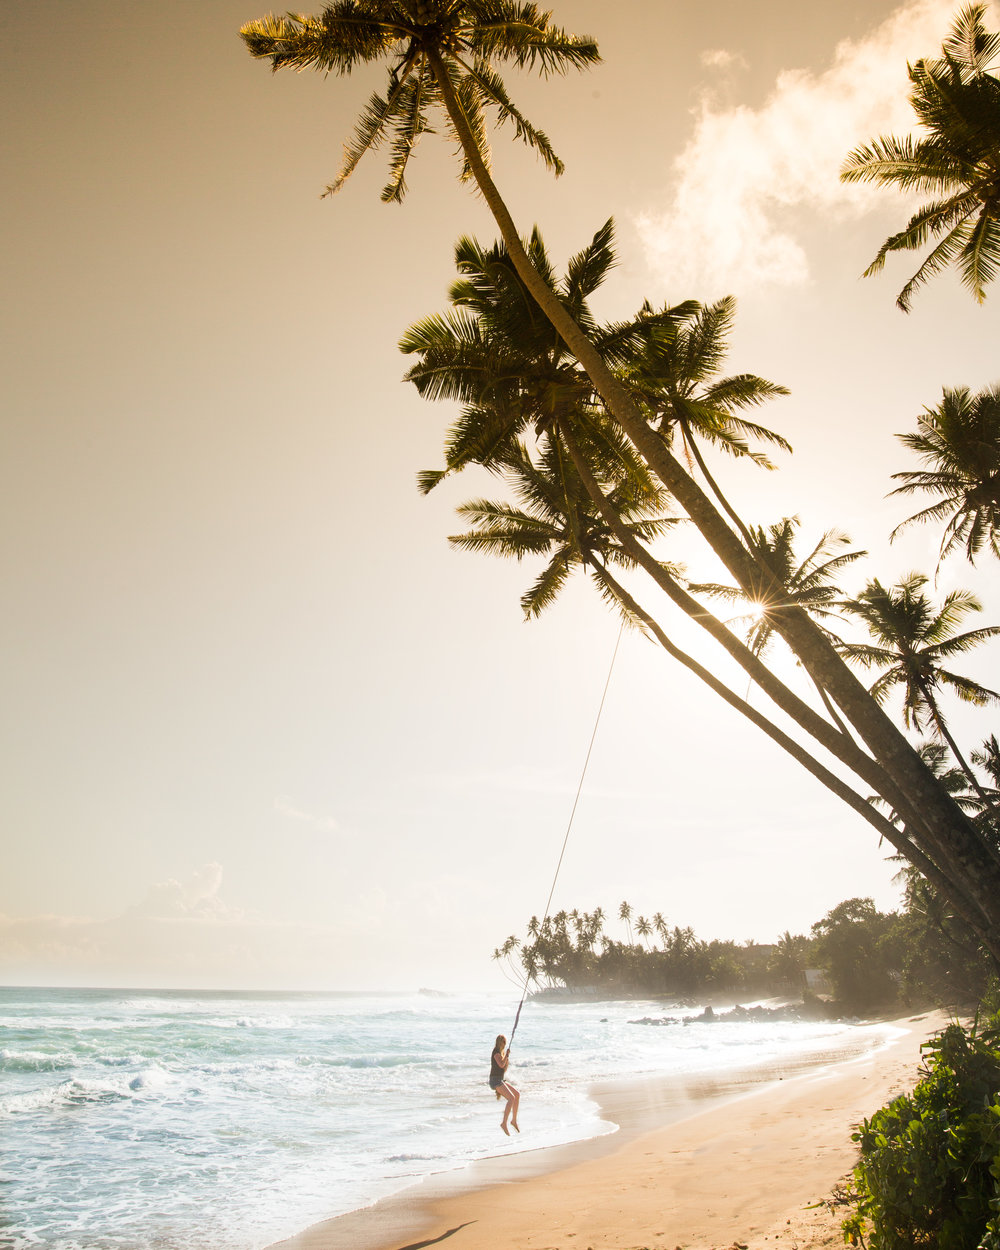 The swing at Mihiripenna Beach, Sri Lanka